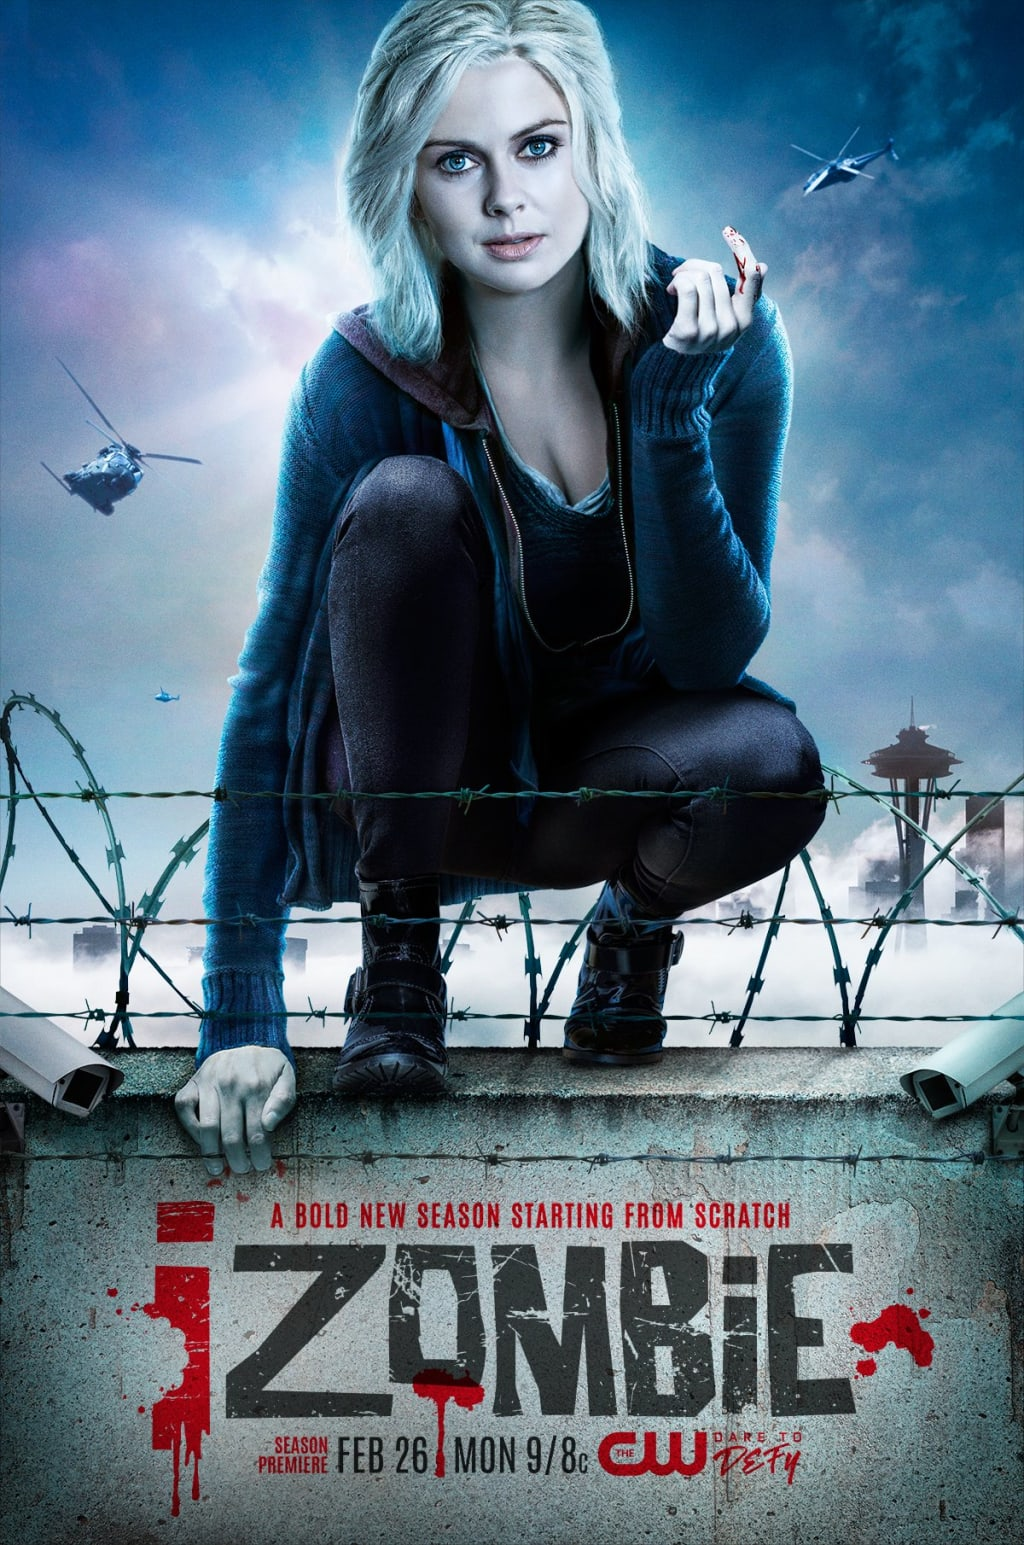 'iZombie' Writer Bob Dearden on What It's Like to Write for the Hit Show and What We Can Expect From Season 4